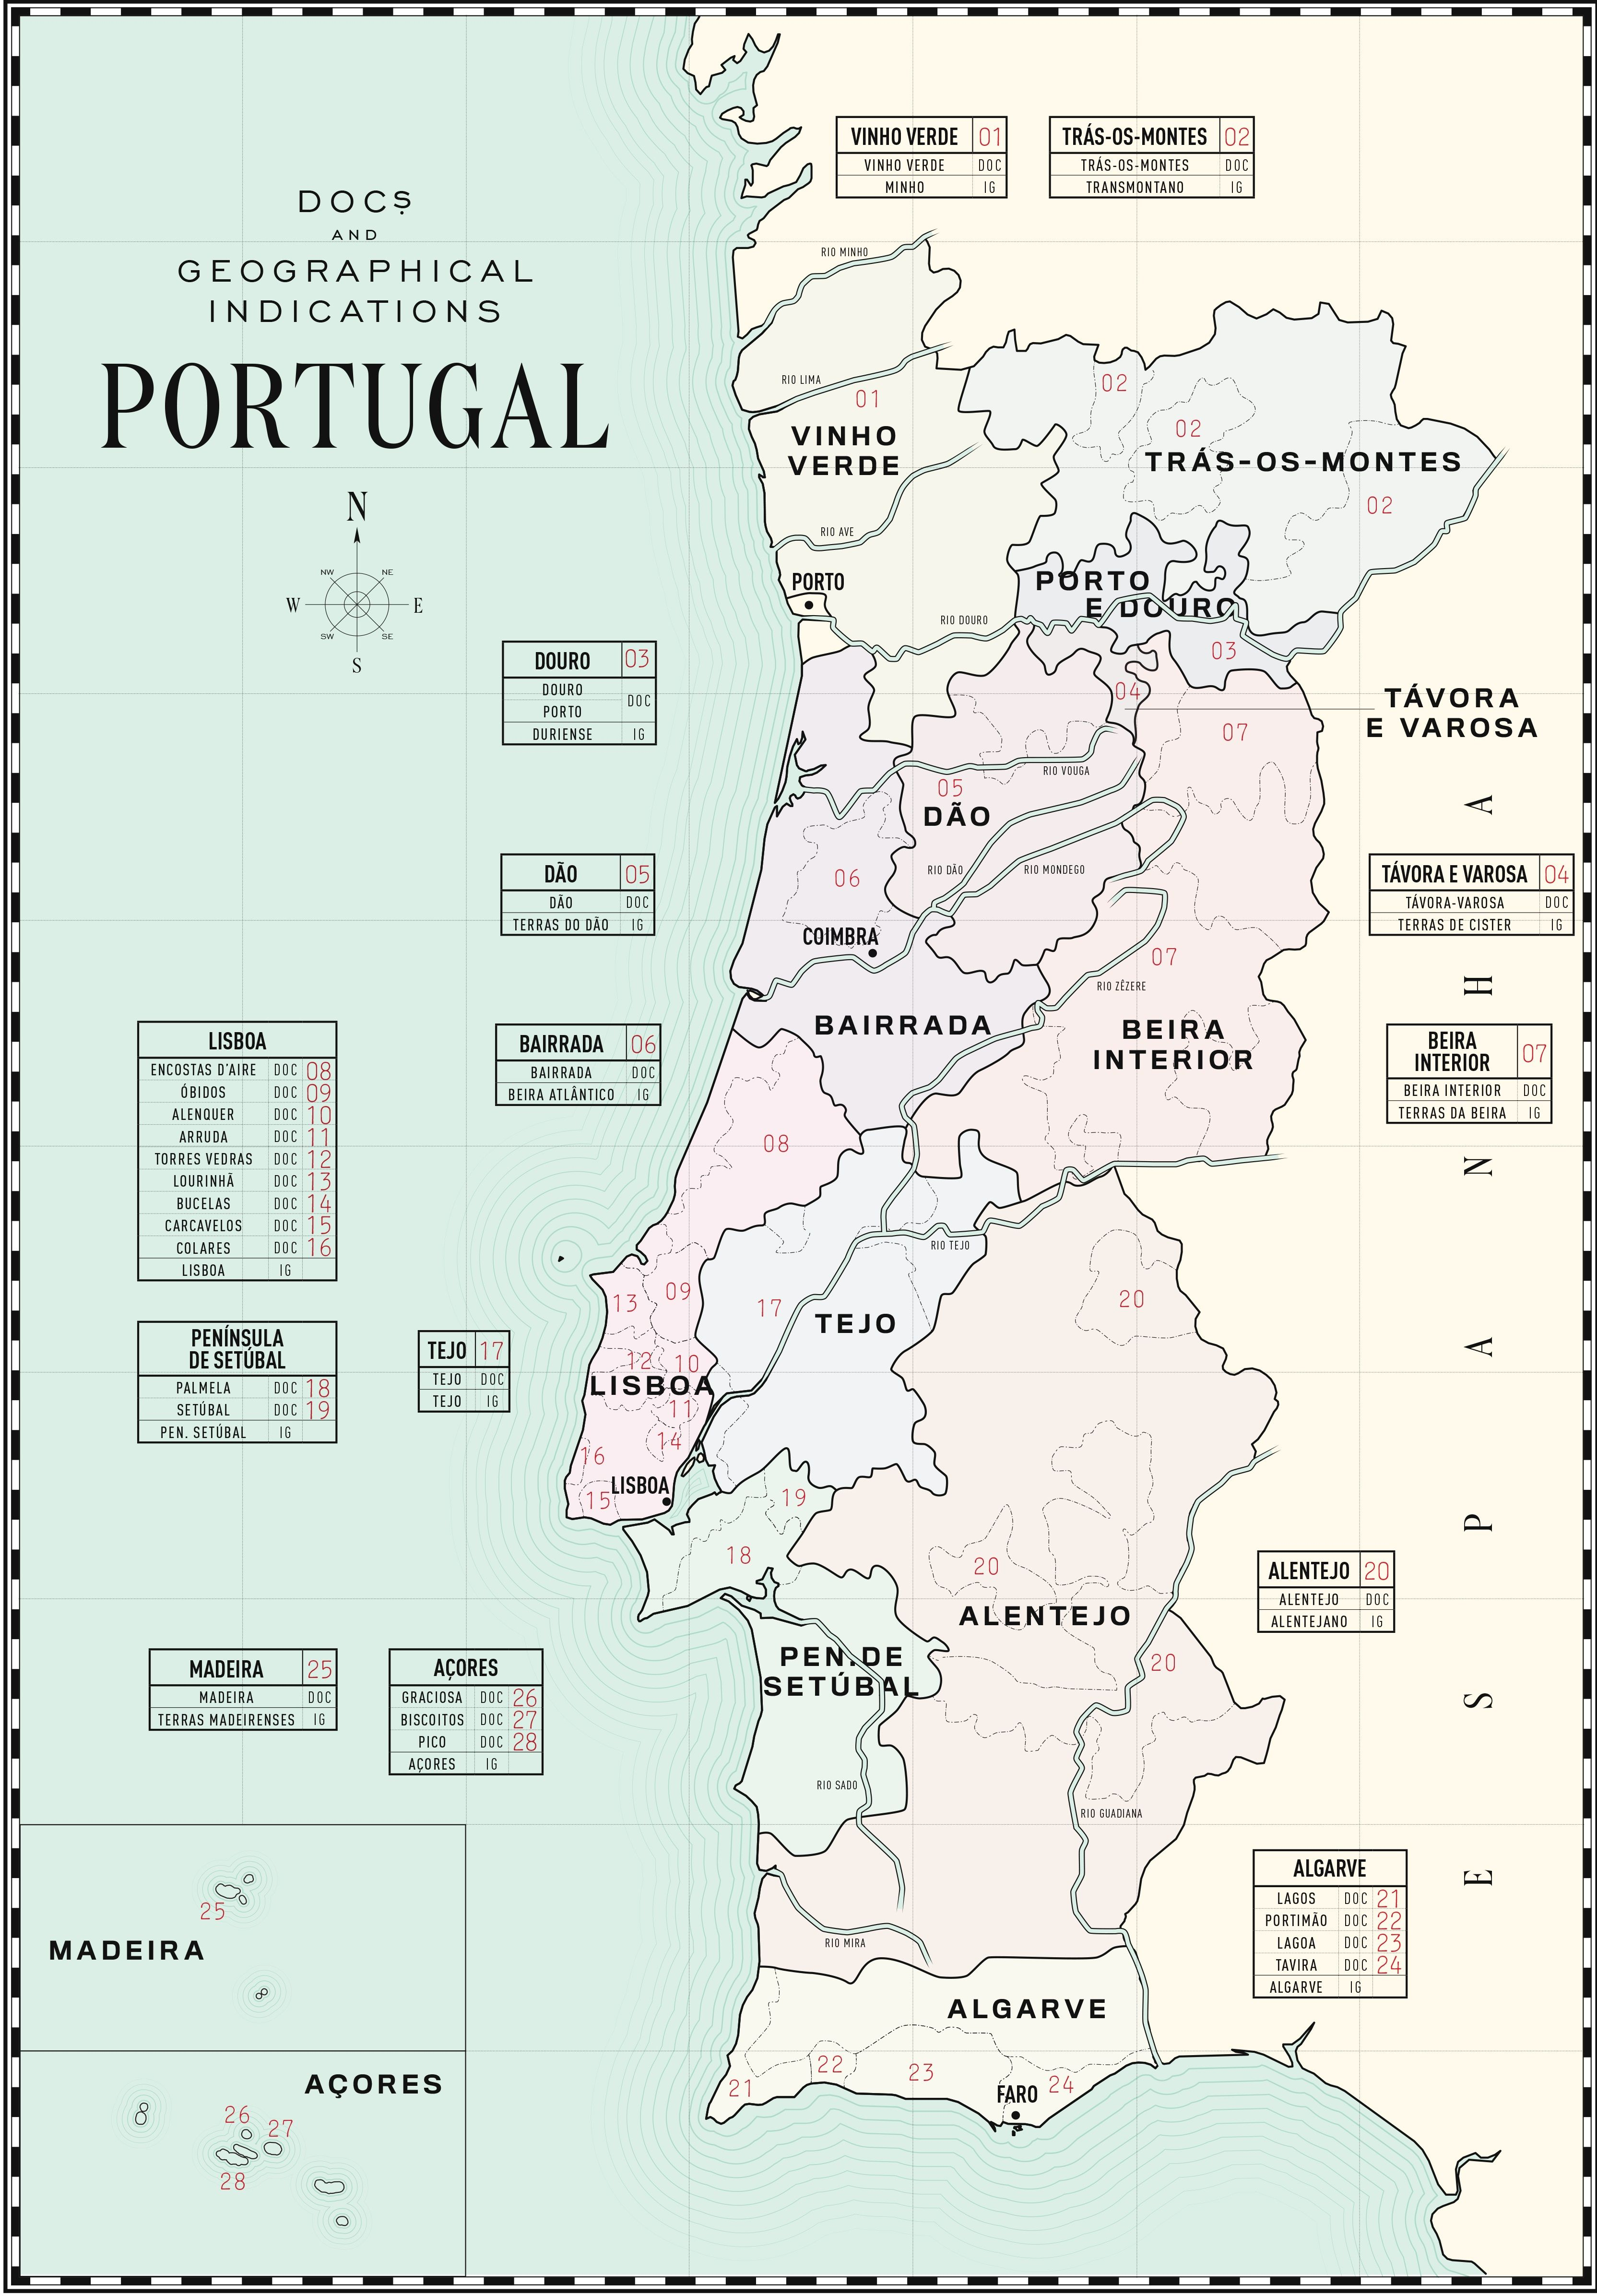 Wines of portugal a world of difference regies vitivincolas wines of portugal a world of difference regies vitivincolas gumiabroncs